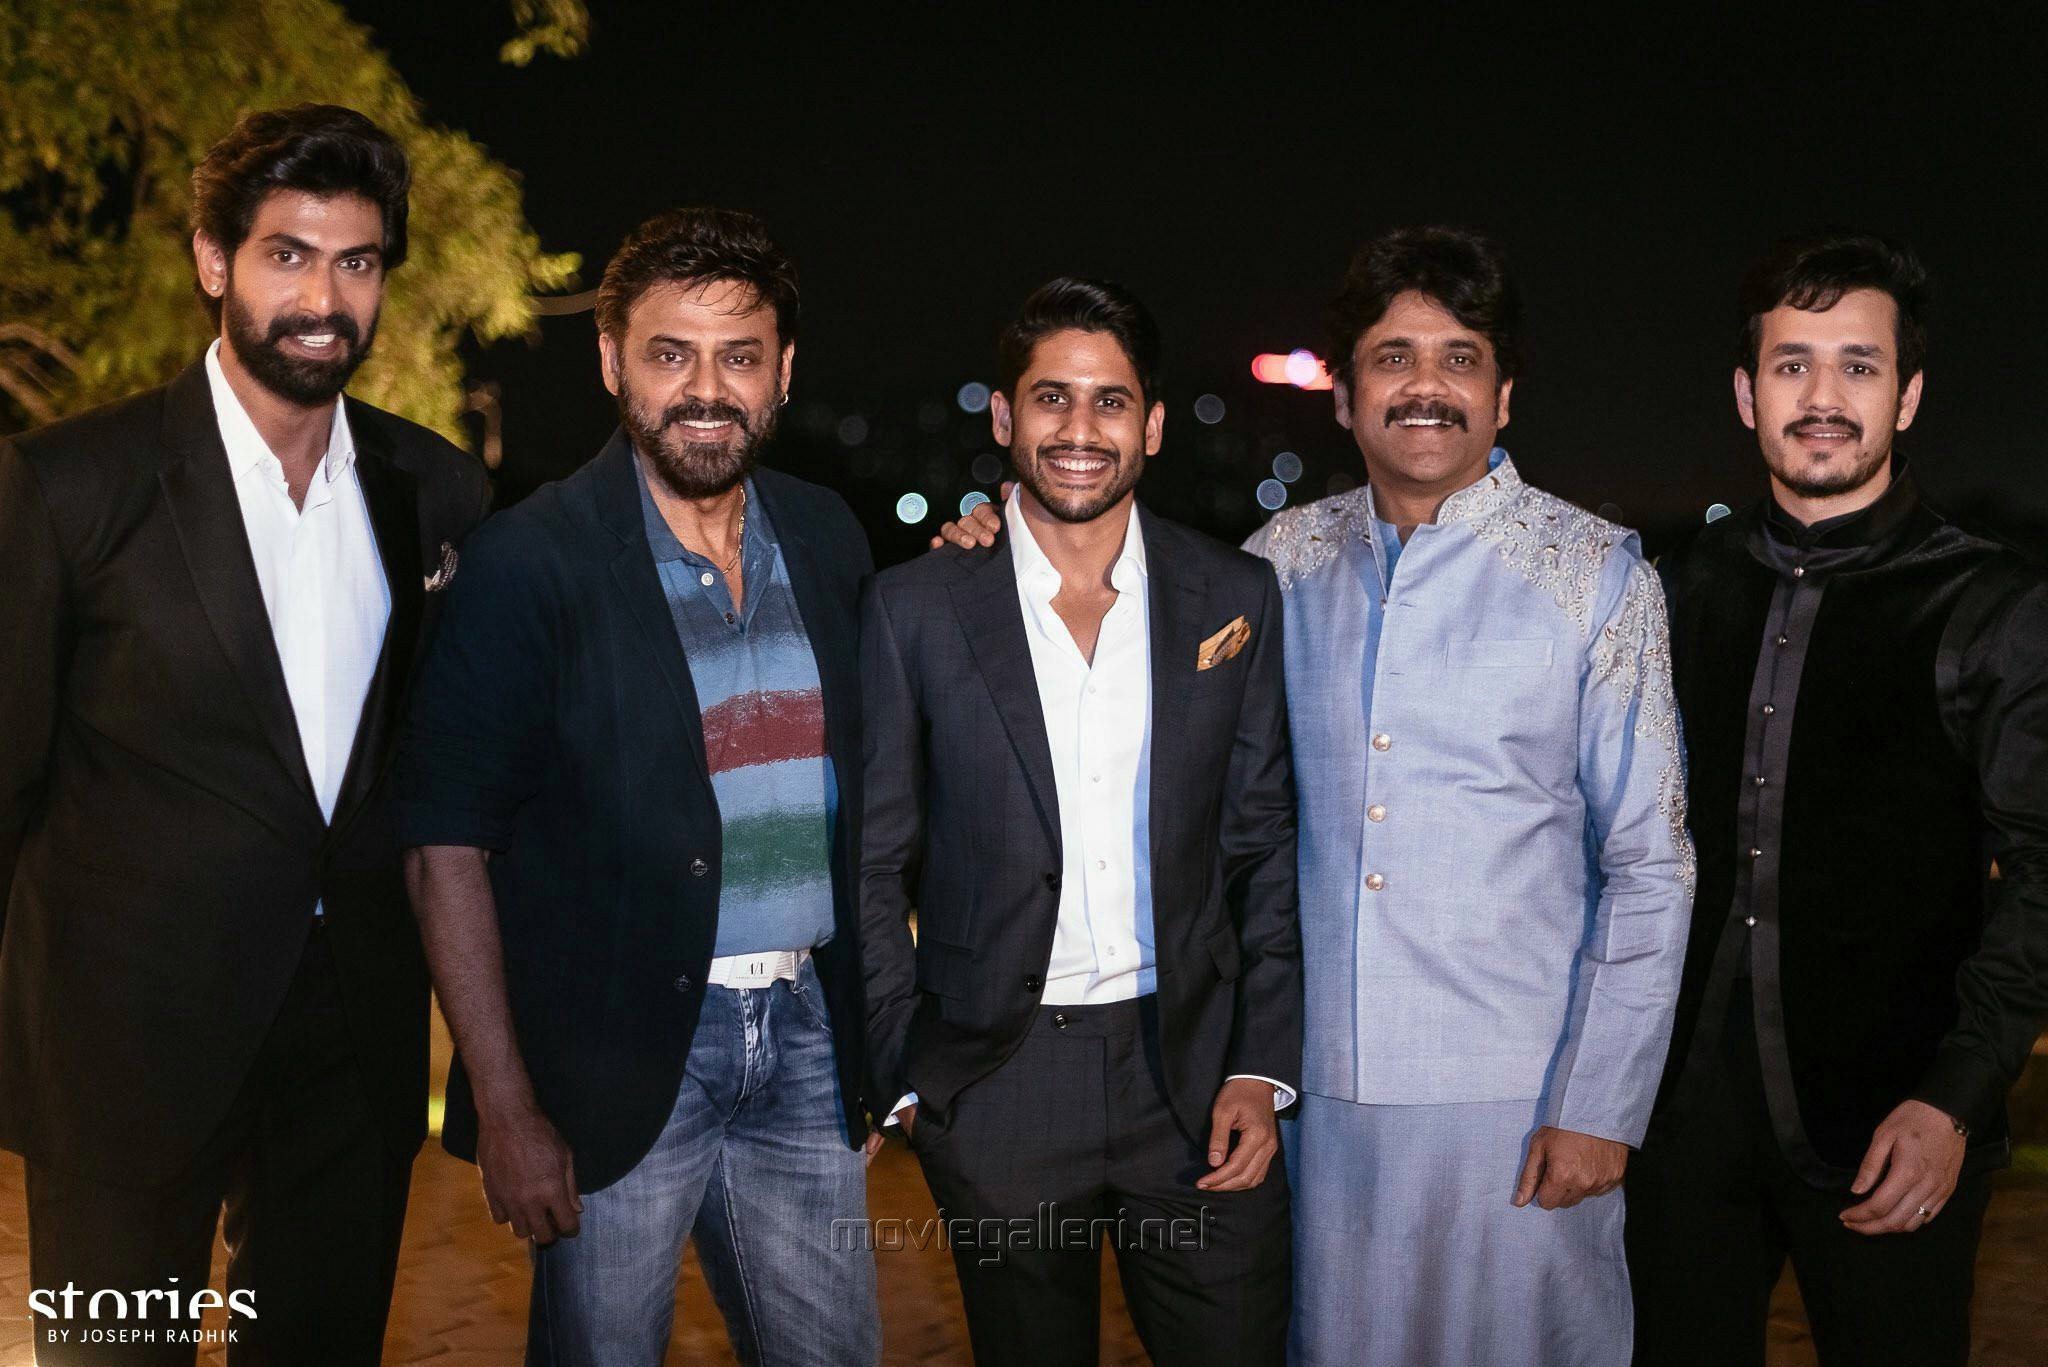 Image result for Also this photo of Naga Chaitanya, Rana Daggubati, Akhil Akkineni, Nagarjuna Akkineni and Venkatesh: